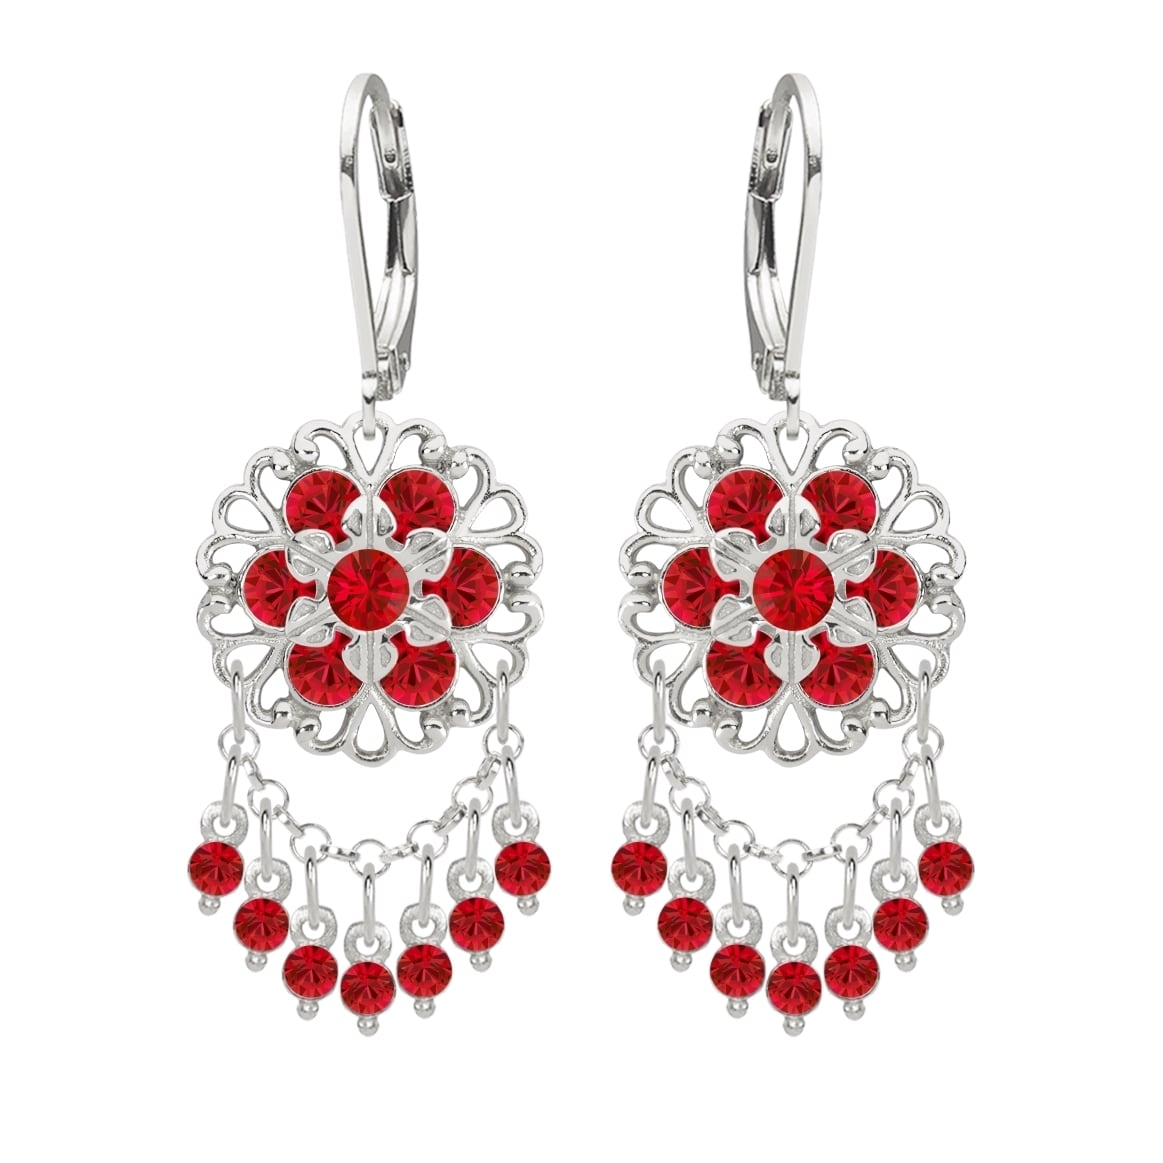 Lucia costin silver red crystal chandelier earrings free shipping lucia costin silver red crystal chandelier earrings free shipping today overstock 17670686 arubaitofo Choice Image